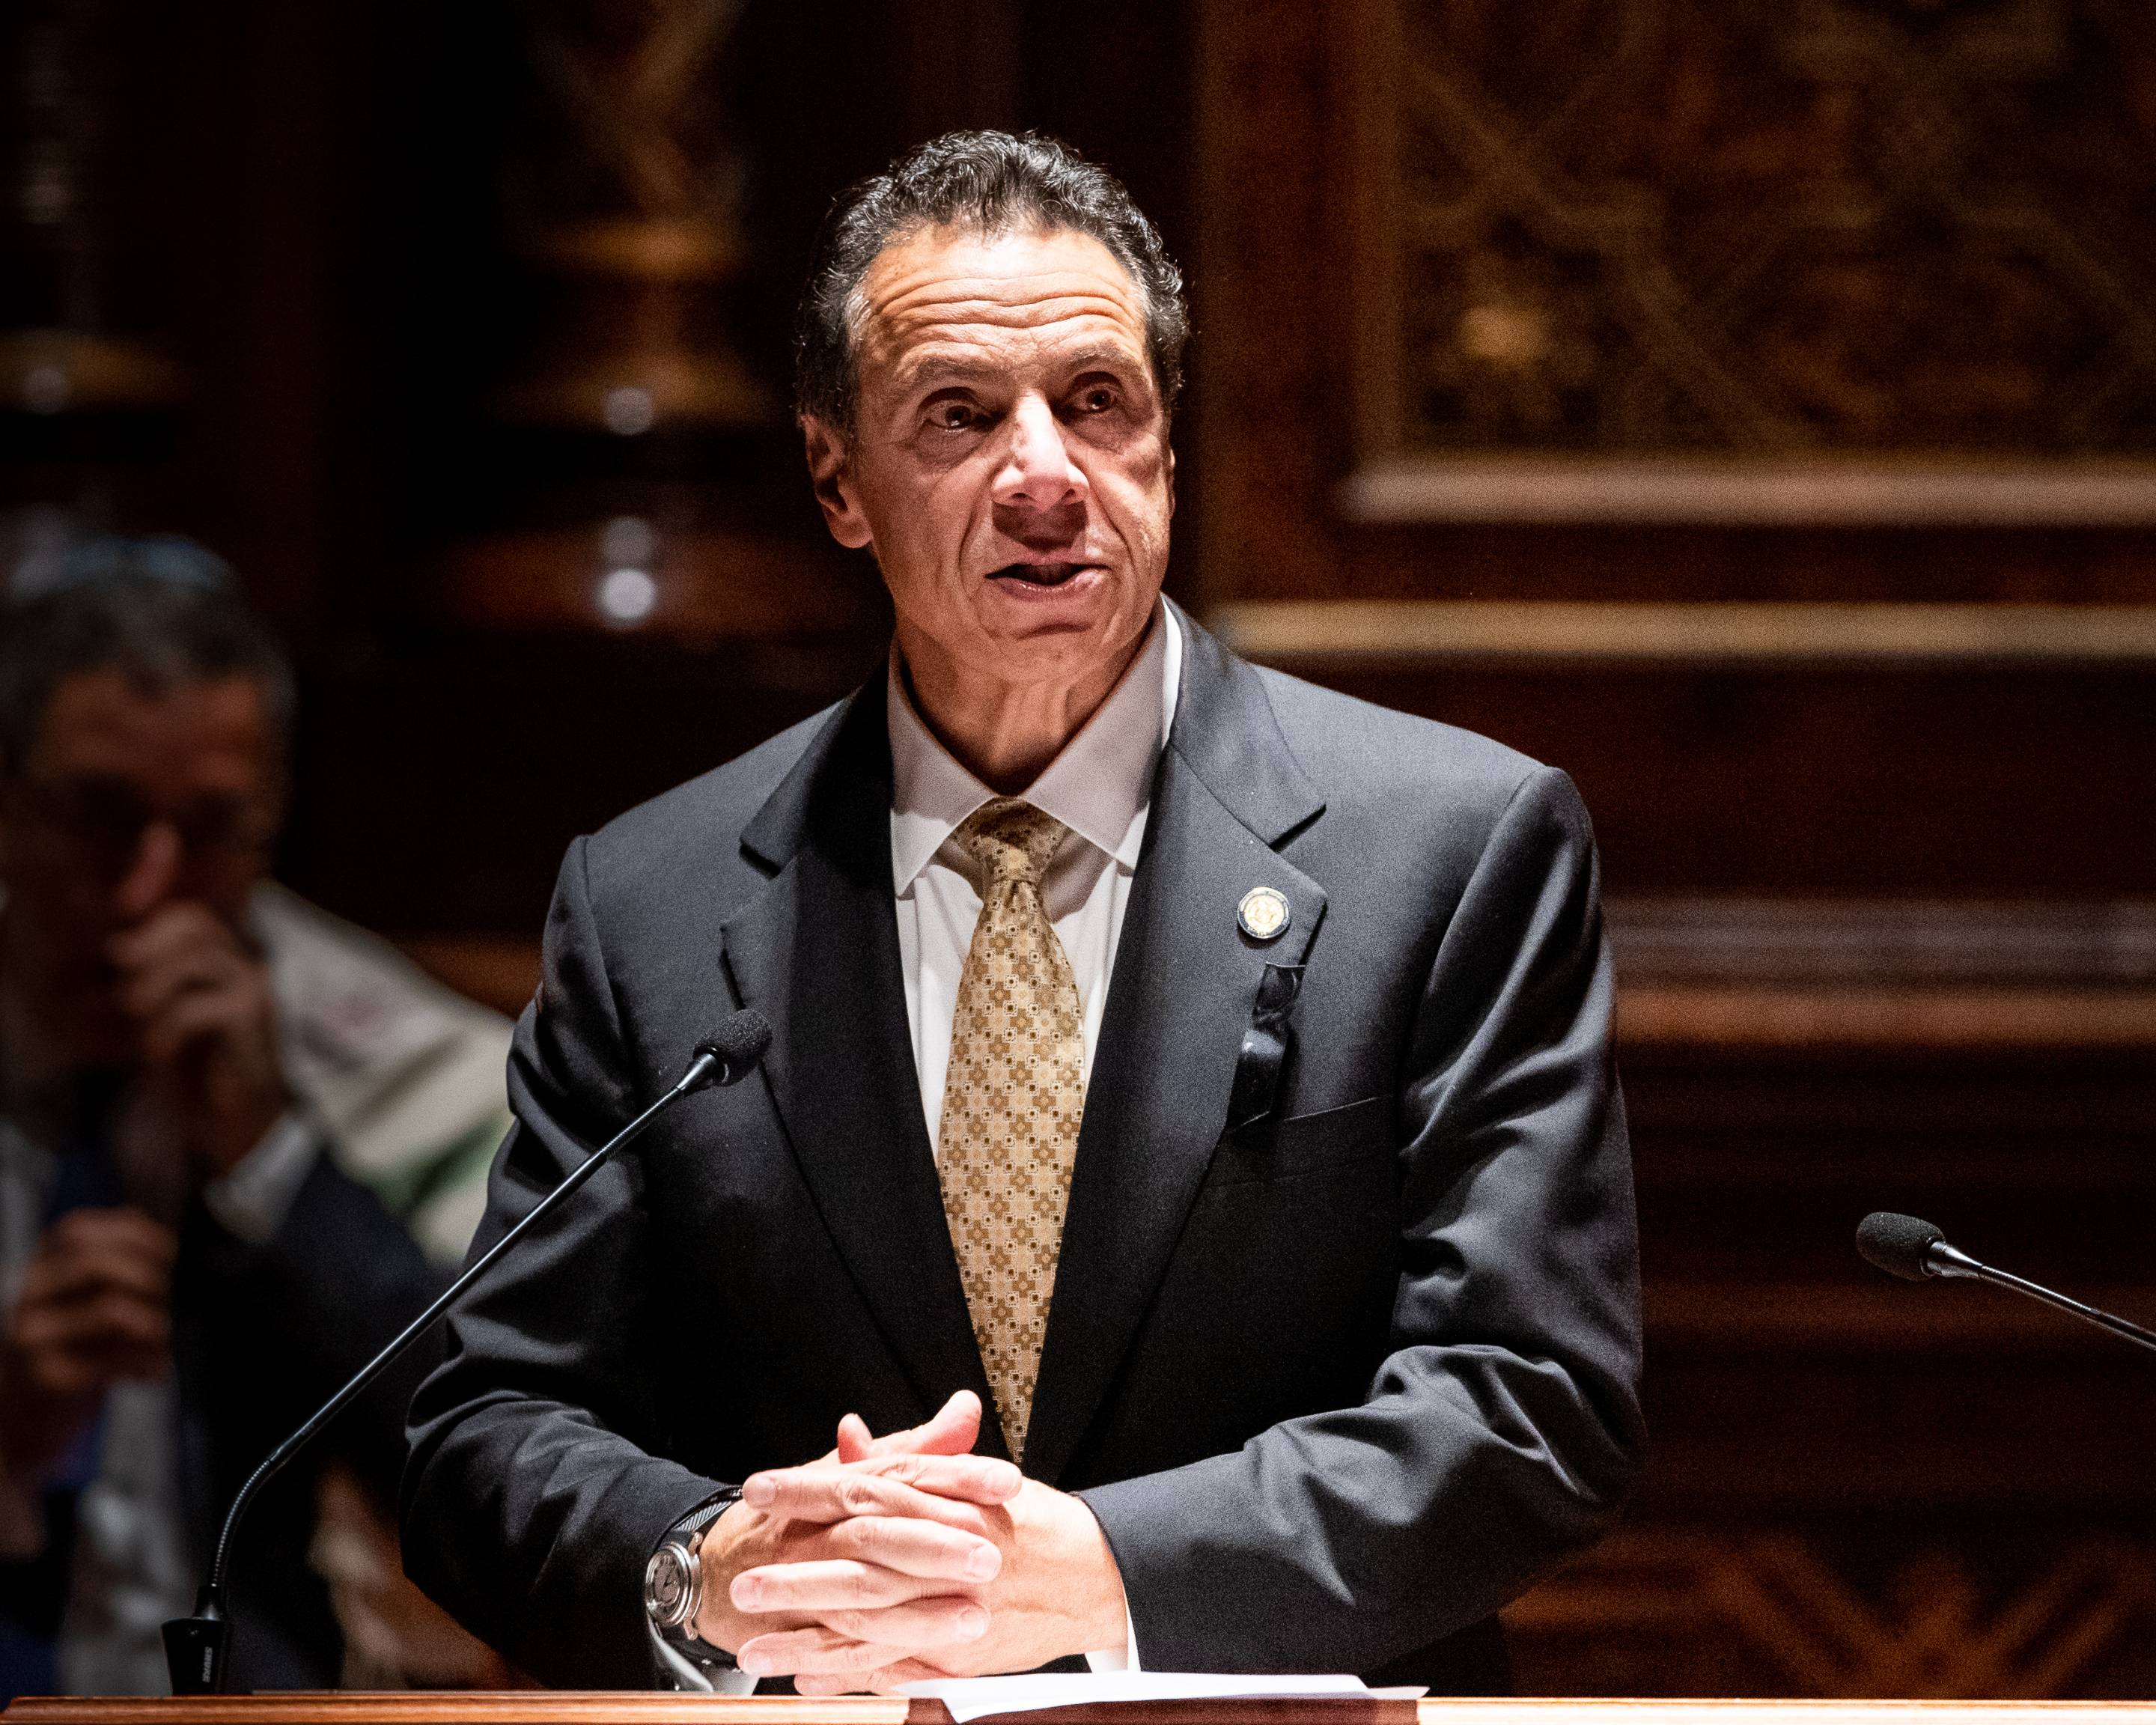 Governor Andrew Cuomo (D-NY) speaking at the interfaith